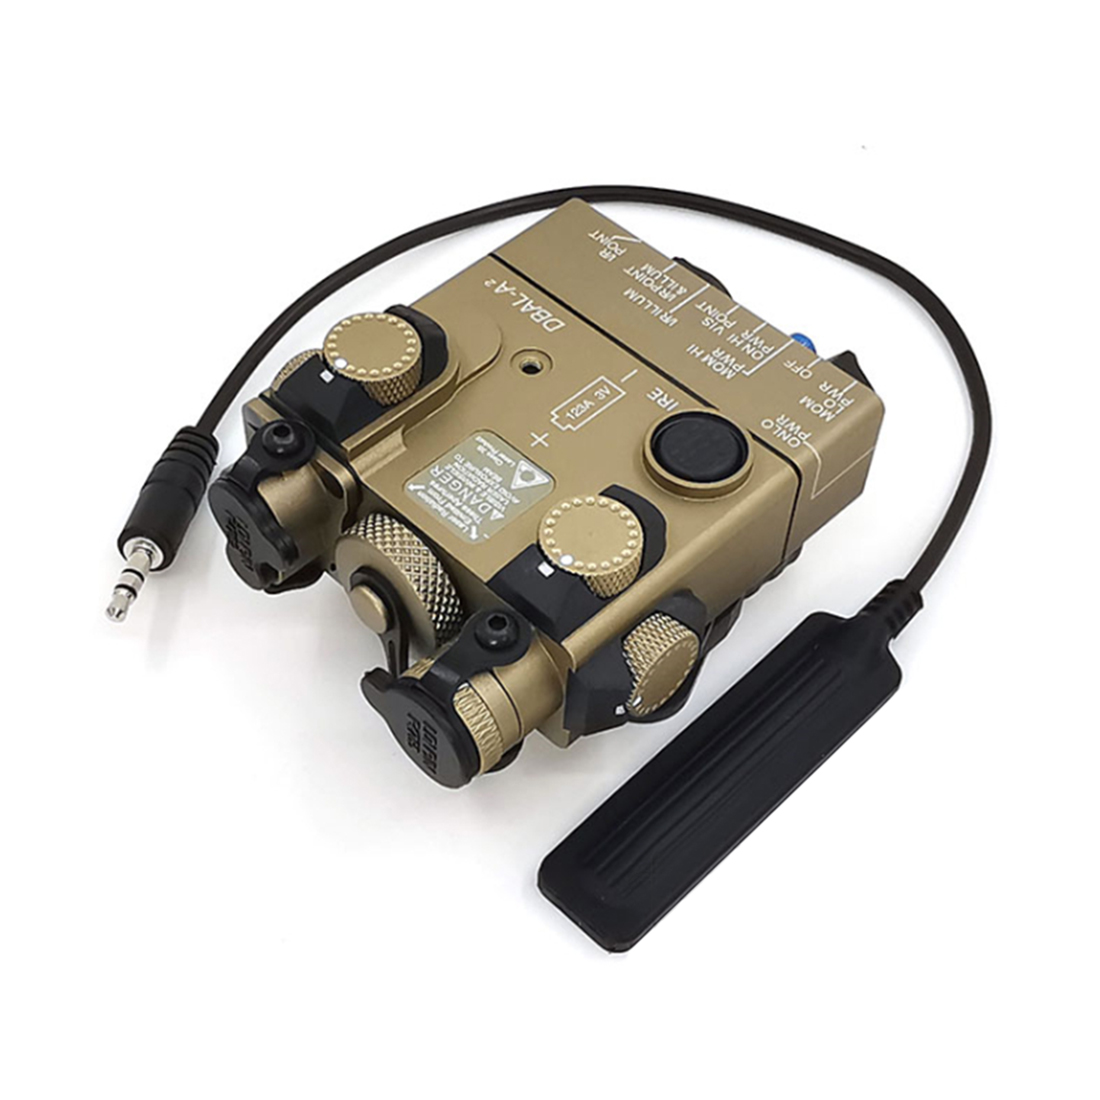 SoTac Night Vision IR PEQ15 dbal <font><b>a2</b></font> Laser Sight Aimed Battery <font><b>Box</b></font> Tactical Equipment - Tan IR Infrared Fill <font><b>Light</b></font> Version image